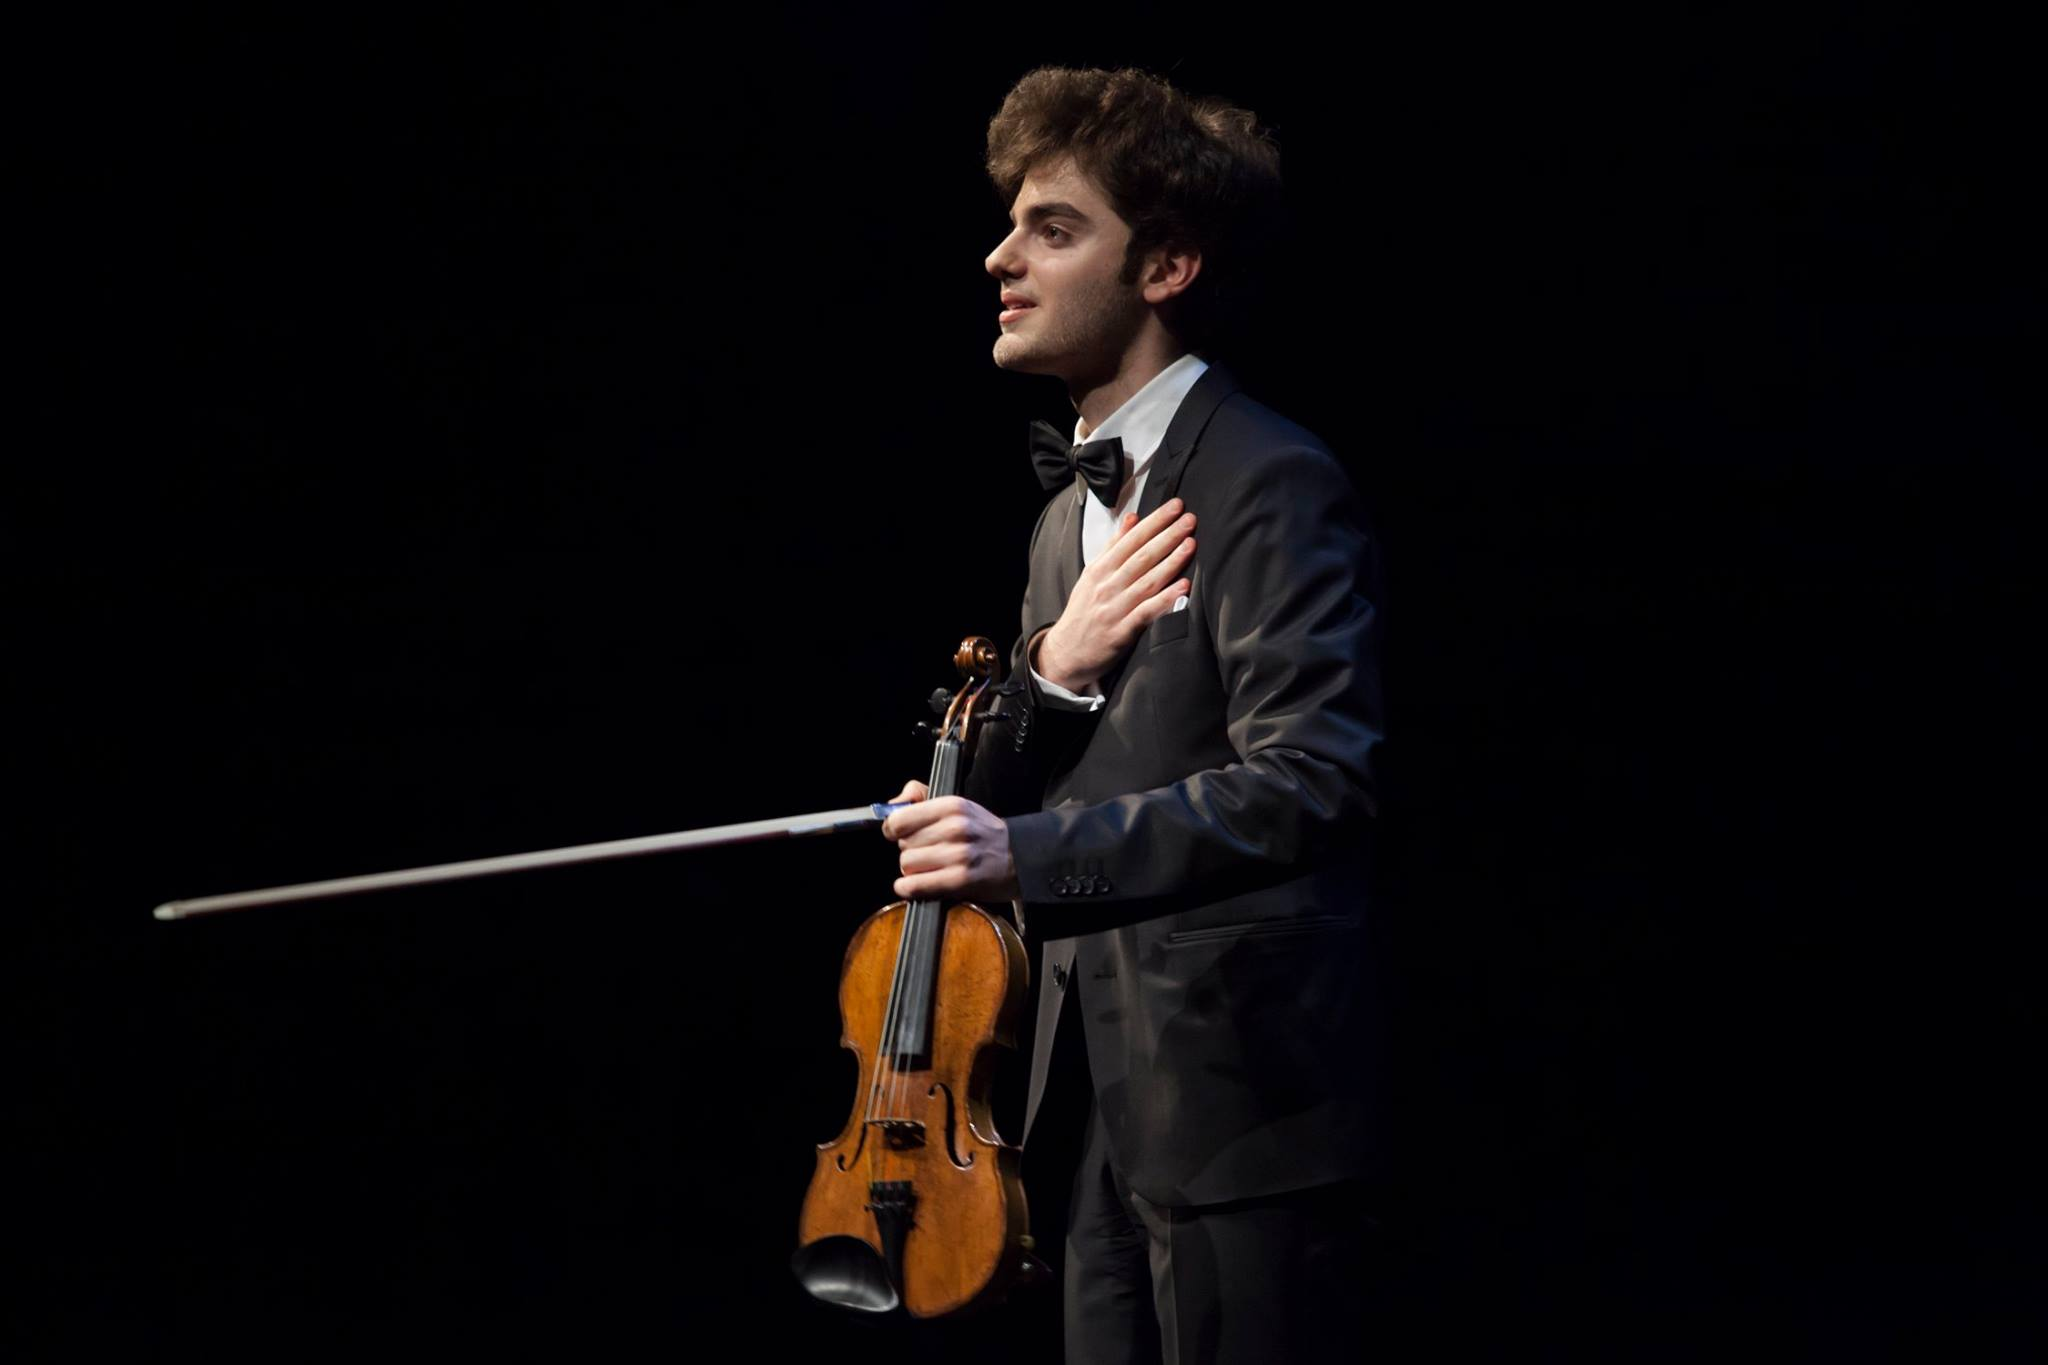 Label news: Young violinist quits Sony